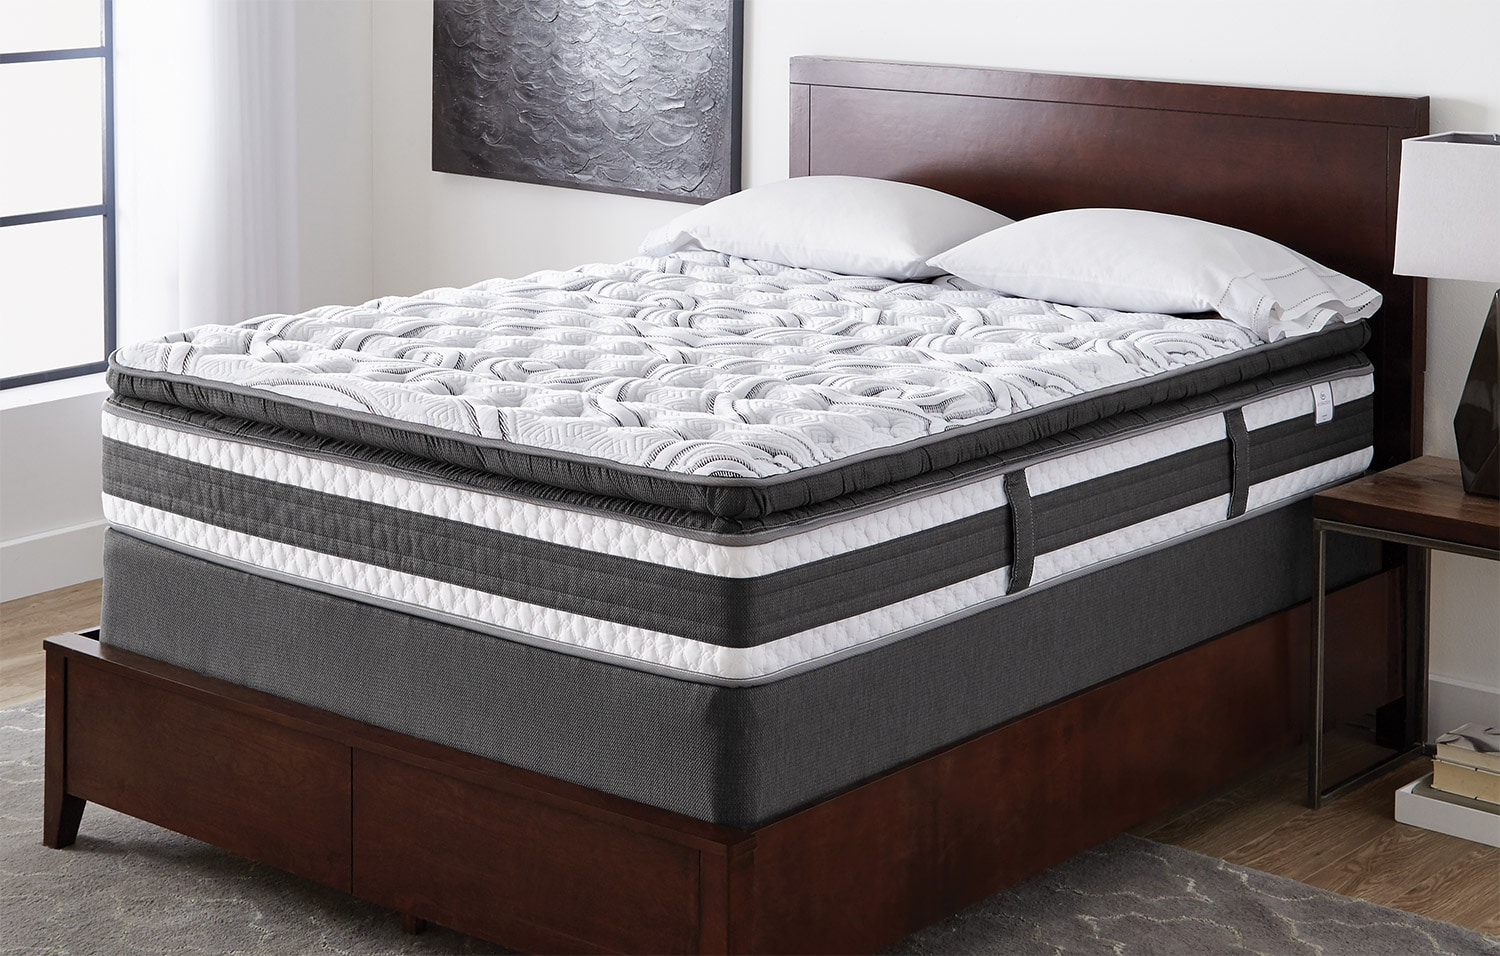 Mattresses and Bedding - Serta iCollection Lynncroft Pillow-Top Firm Queen Mattress Set